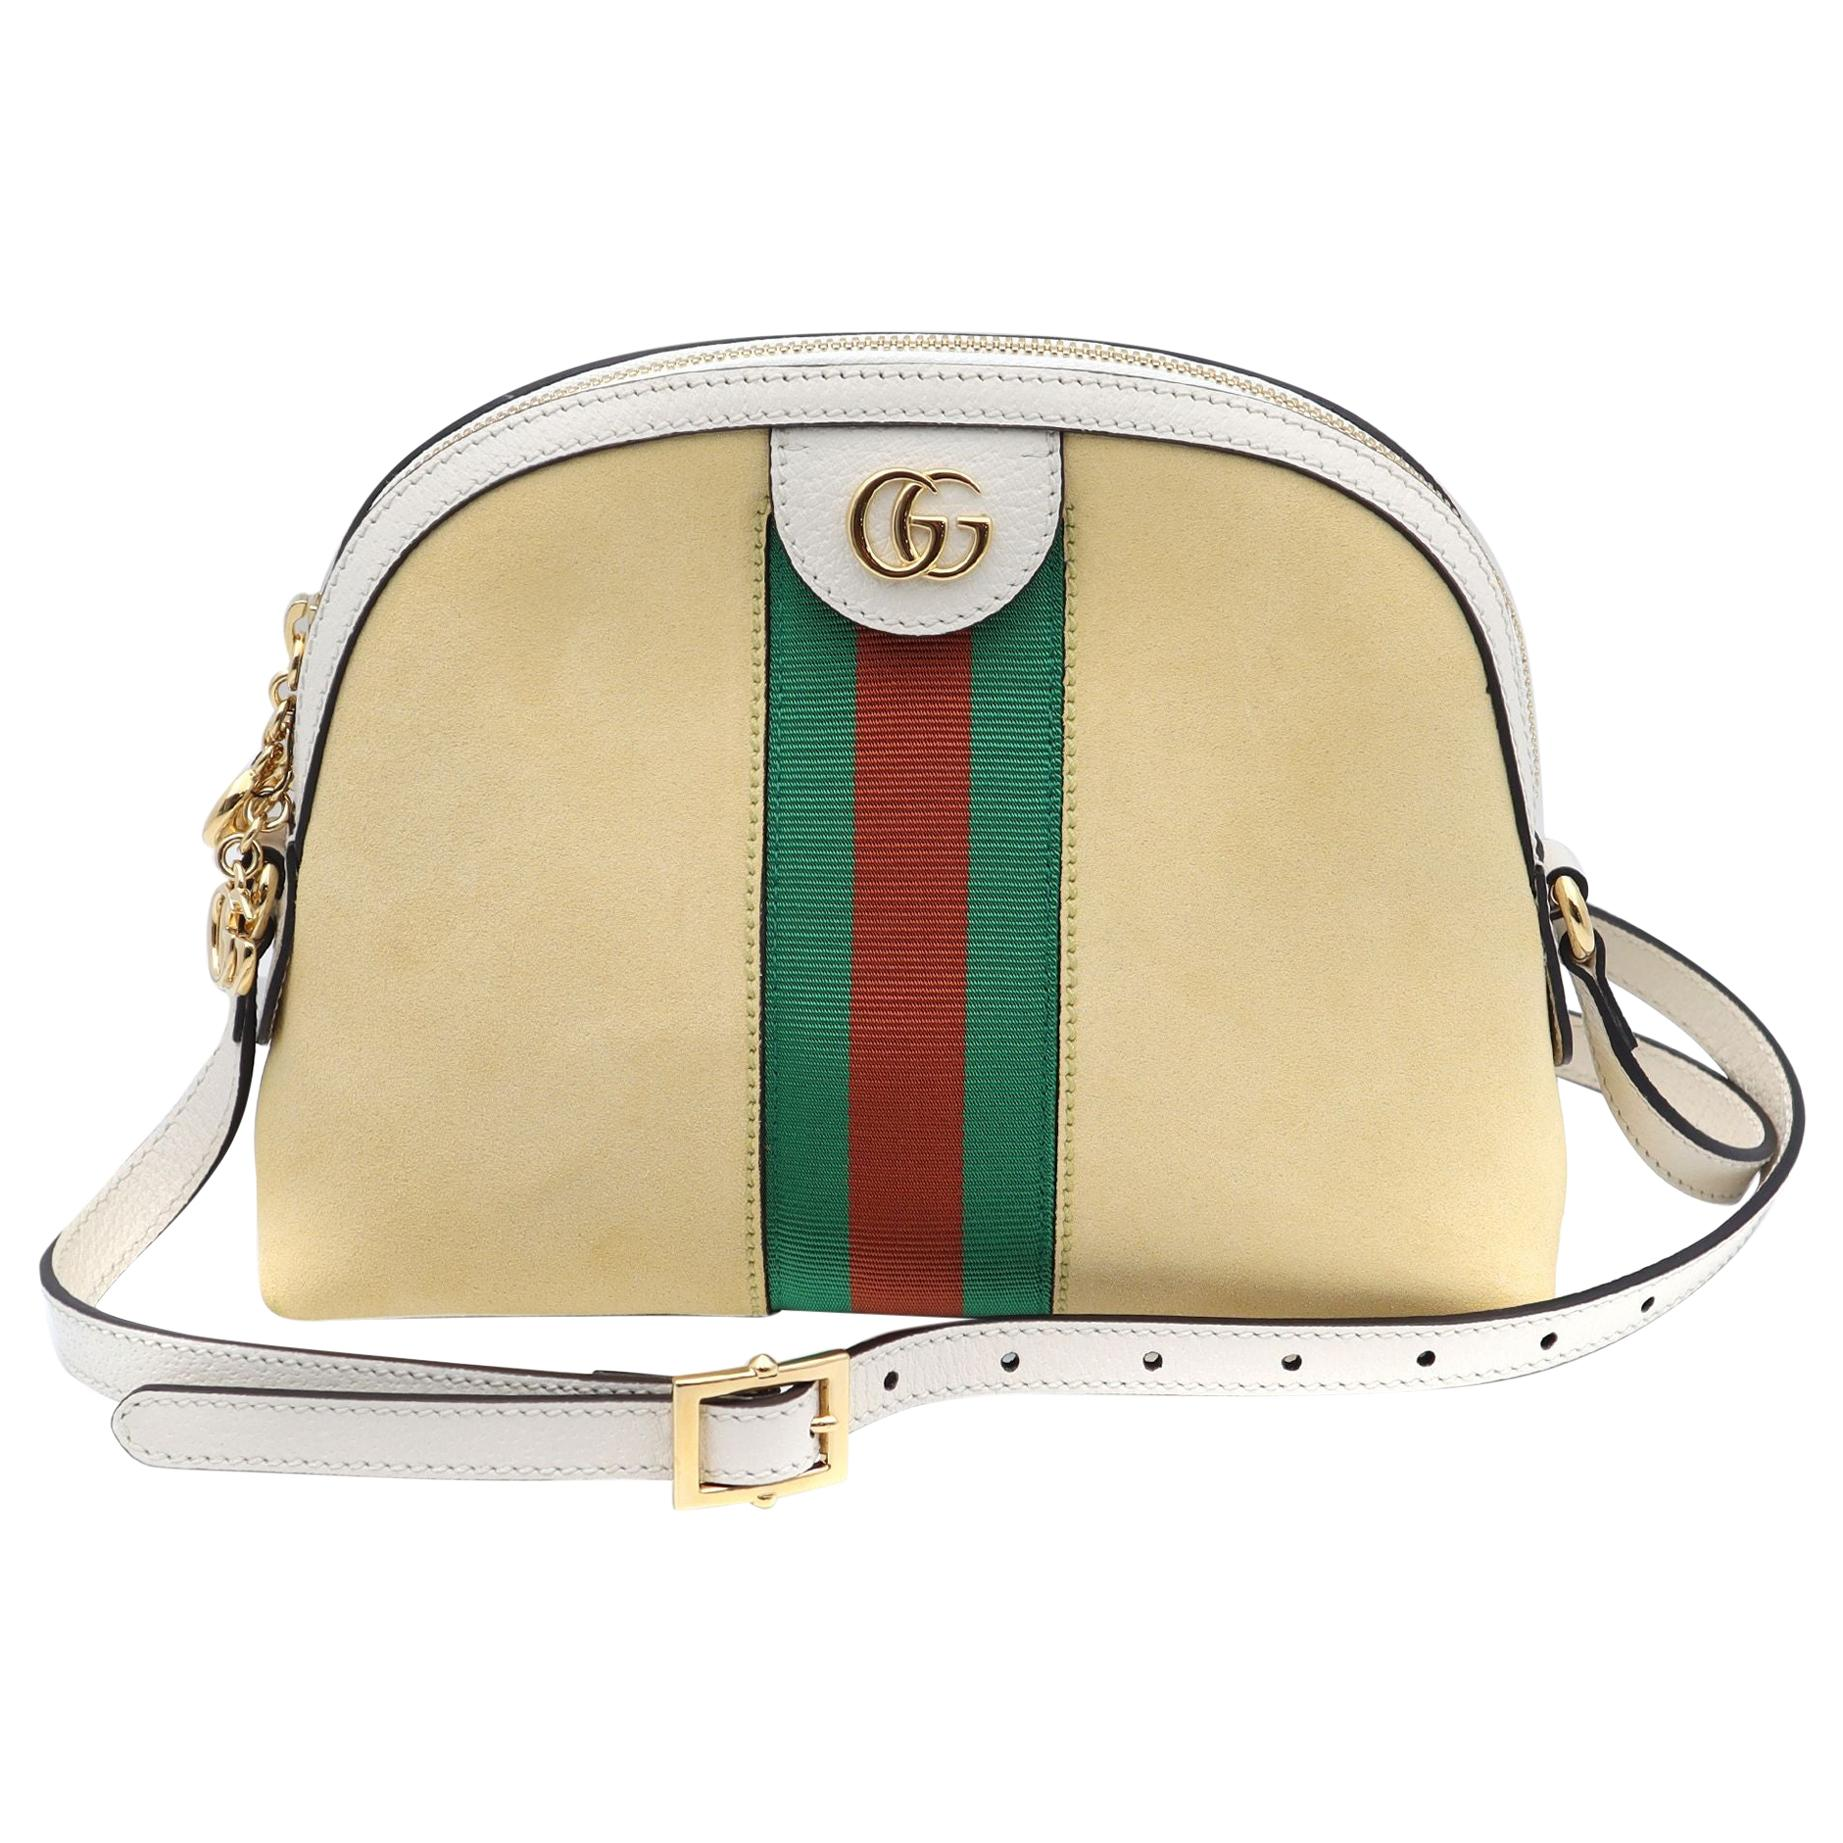 Gucci Yellow and White Small Suede Ophidia Shoulder Bag 499321